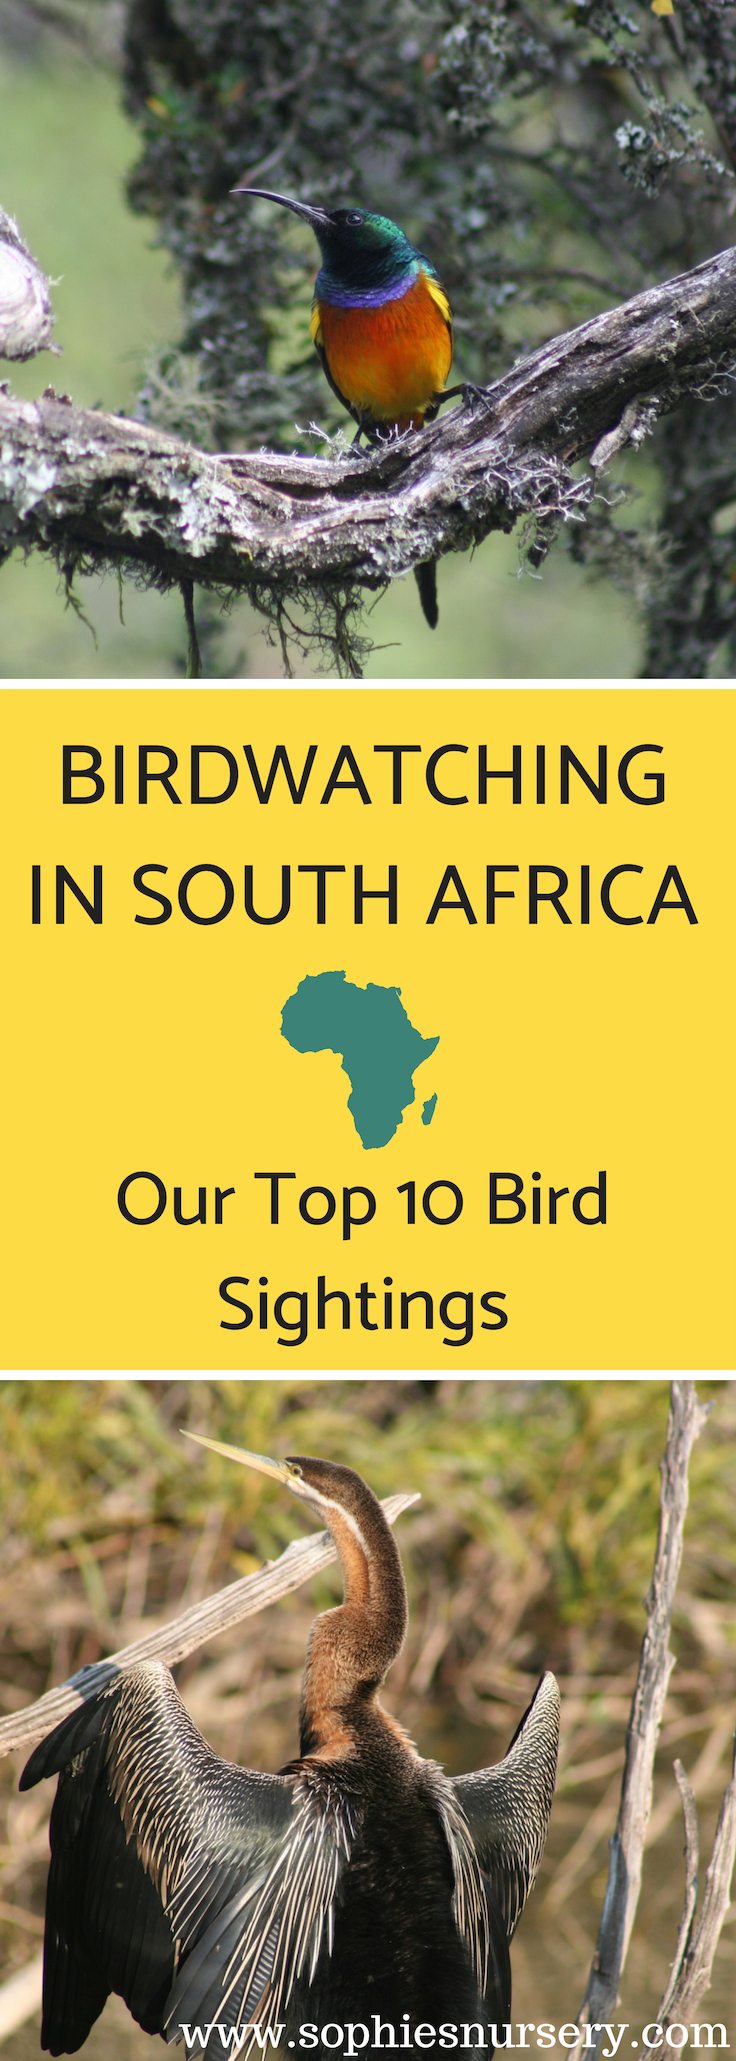 A birders paradise, #birdwatching in South Africa is not to be missed! We have narrowed down our Top 10 bird sightings from our Garden Route trip. What birds would you add to our list?  #SouthAfrica #travel #vacation #honeymoon #wildlife